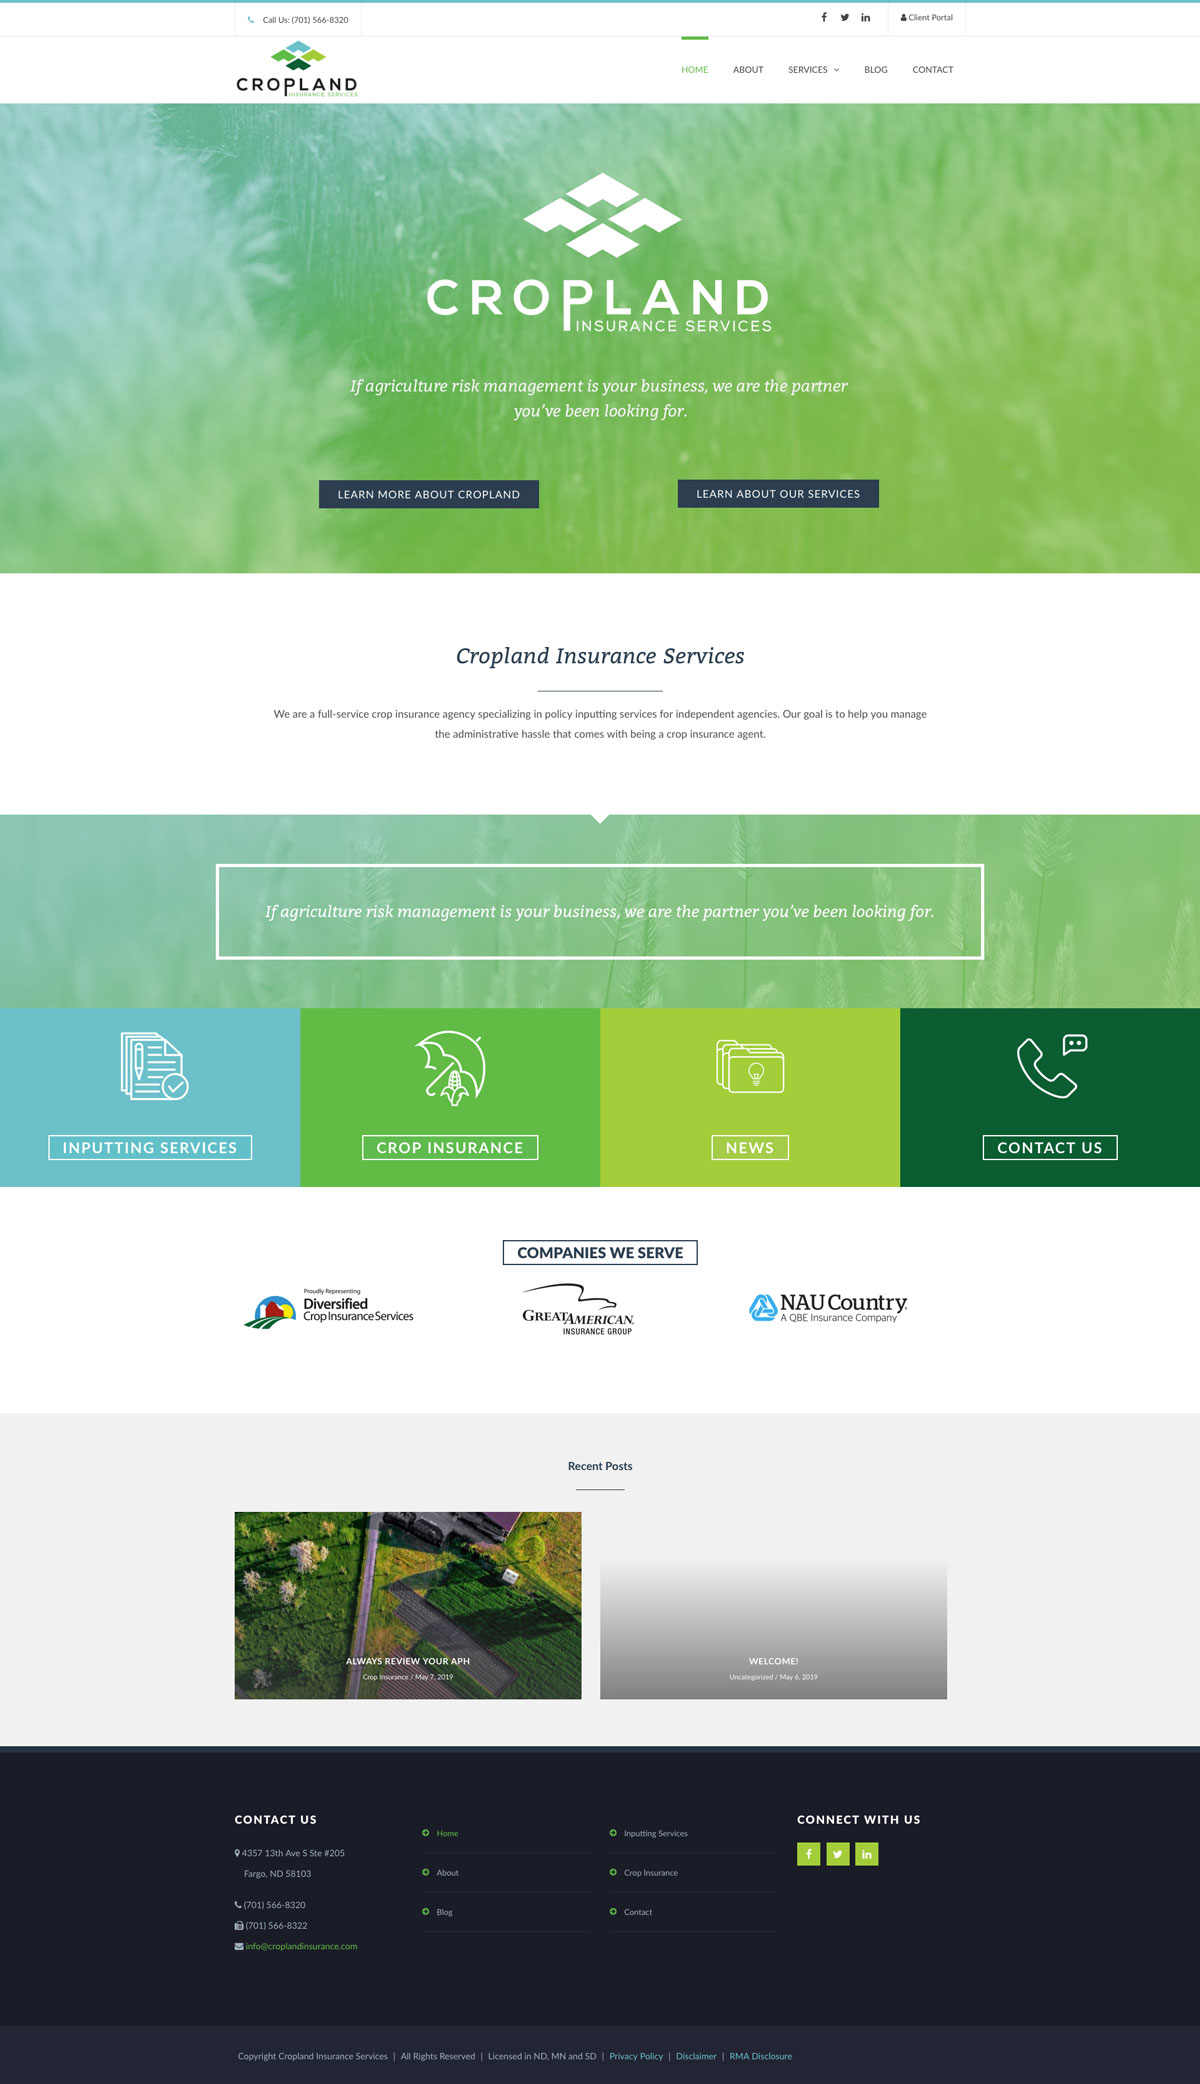 Cropland Home Page